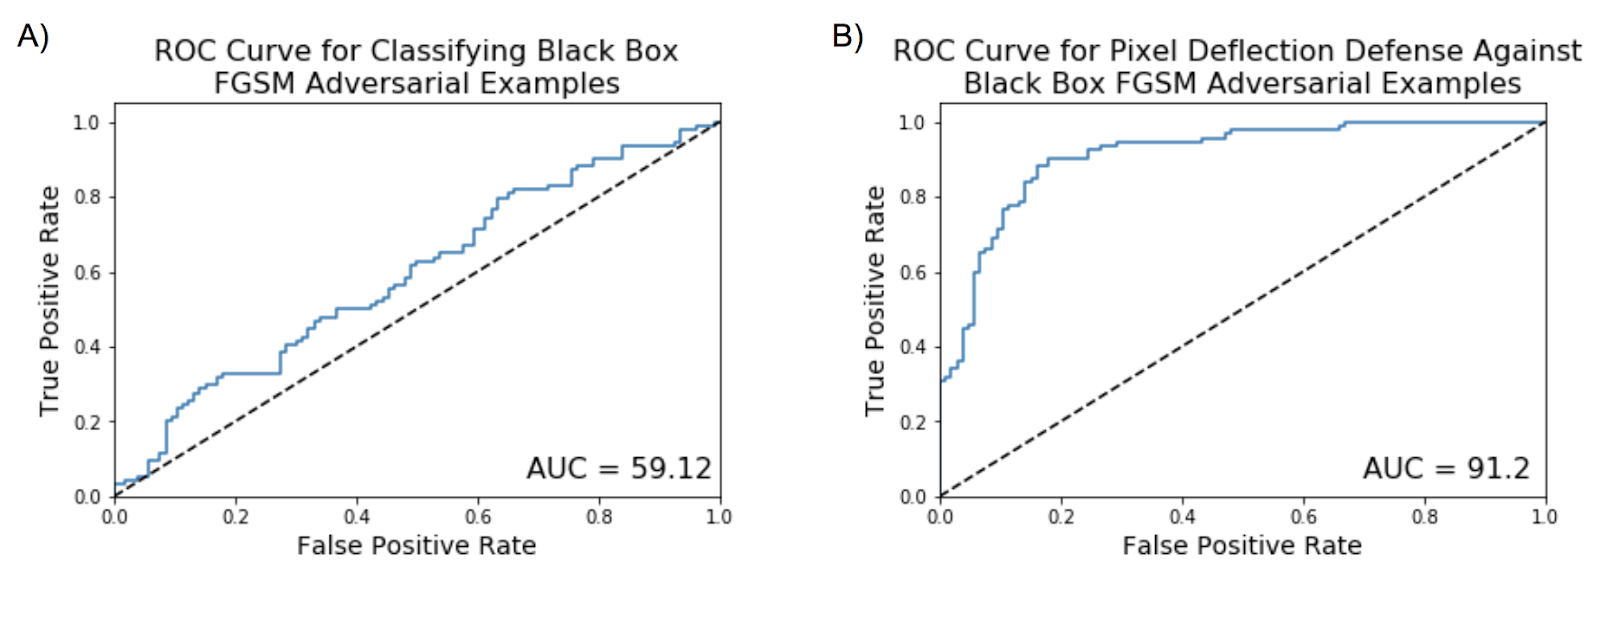 Figure 11. Classifying whether an image is political or non-political. ROC curve and AUC score for classifying black-box A) FGSM adversarial examples without pixel deflection and B) FGSM adversarial examples with pixel deflection.